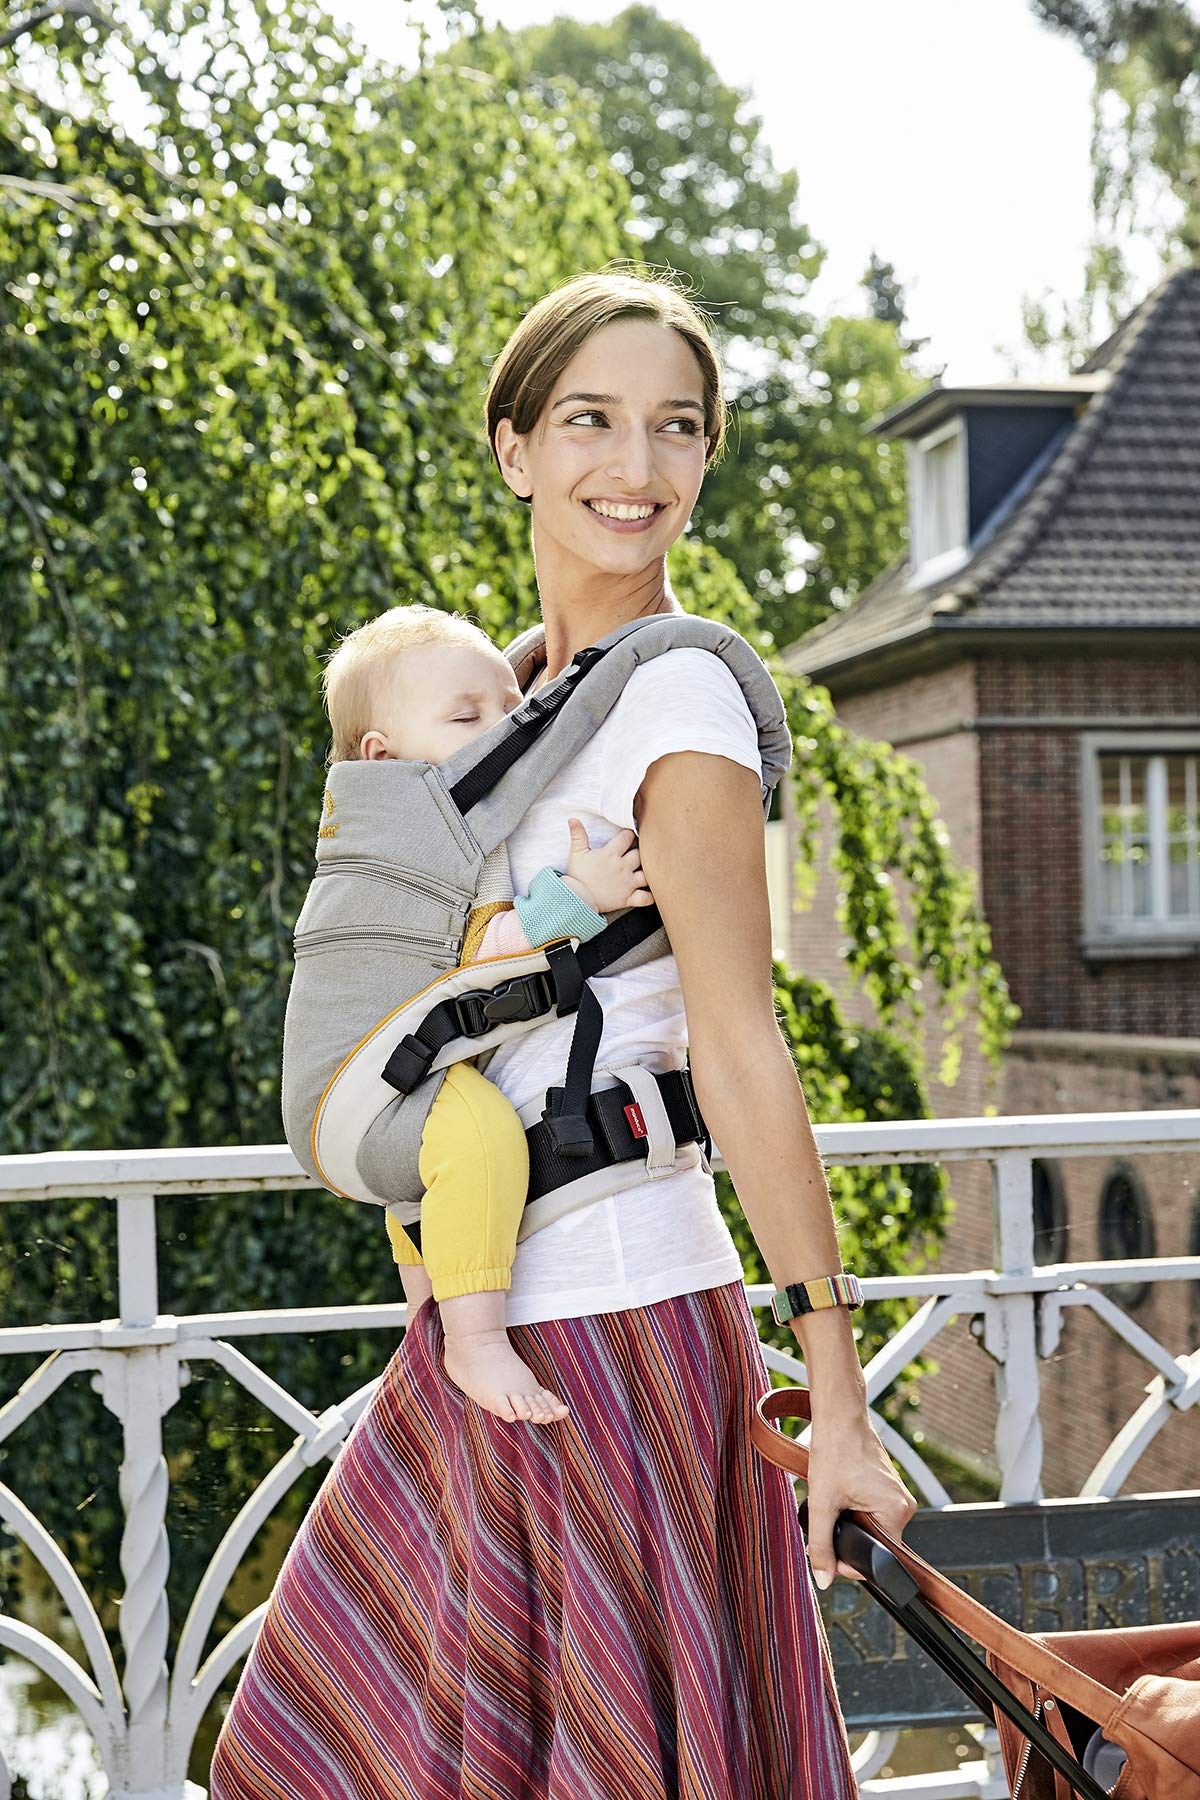 manduca XT > grey- orange < Baby Carrier with Adjustable Seat, 3 Carrying Positions (Front, Hip & Back), No Infant Insert Needed, Organic Cotton, Grows with your Baby from Birth to Toddler (3.5- 20kg) Manduca This baby carrier adapts from newborn to toddler. Infinitely adjustable seat (16-50cm) without buttons, knots, Velcro or cord system. Novel tension arches support baby's spine & hip Three height options thanks to the patented back extension & integrated zip-in. Multifunctional headrest (classic hood or rolled up as neck support). No accessories needed. One Size 3 carry positions: front, hip and back carrier. Not intended for face-out position. Supports the squat-spread position (M-Position) 4